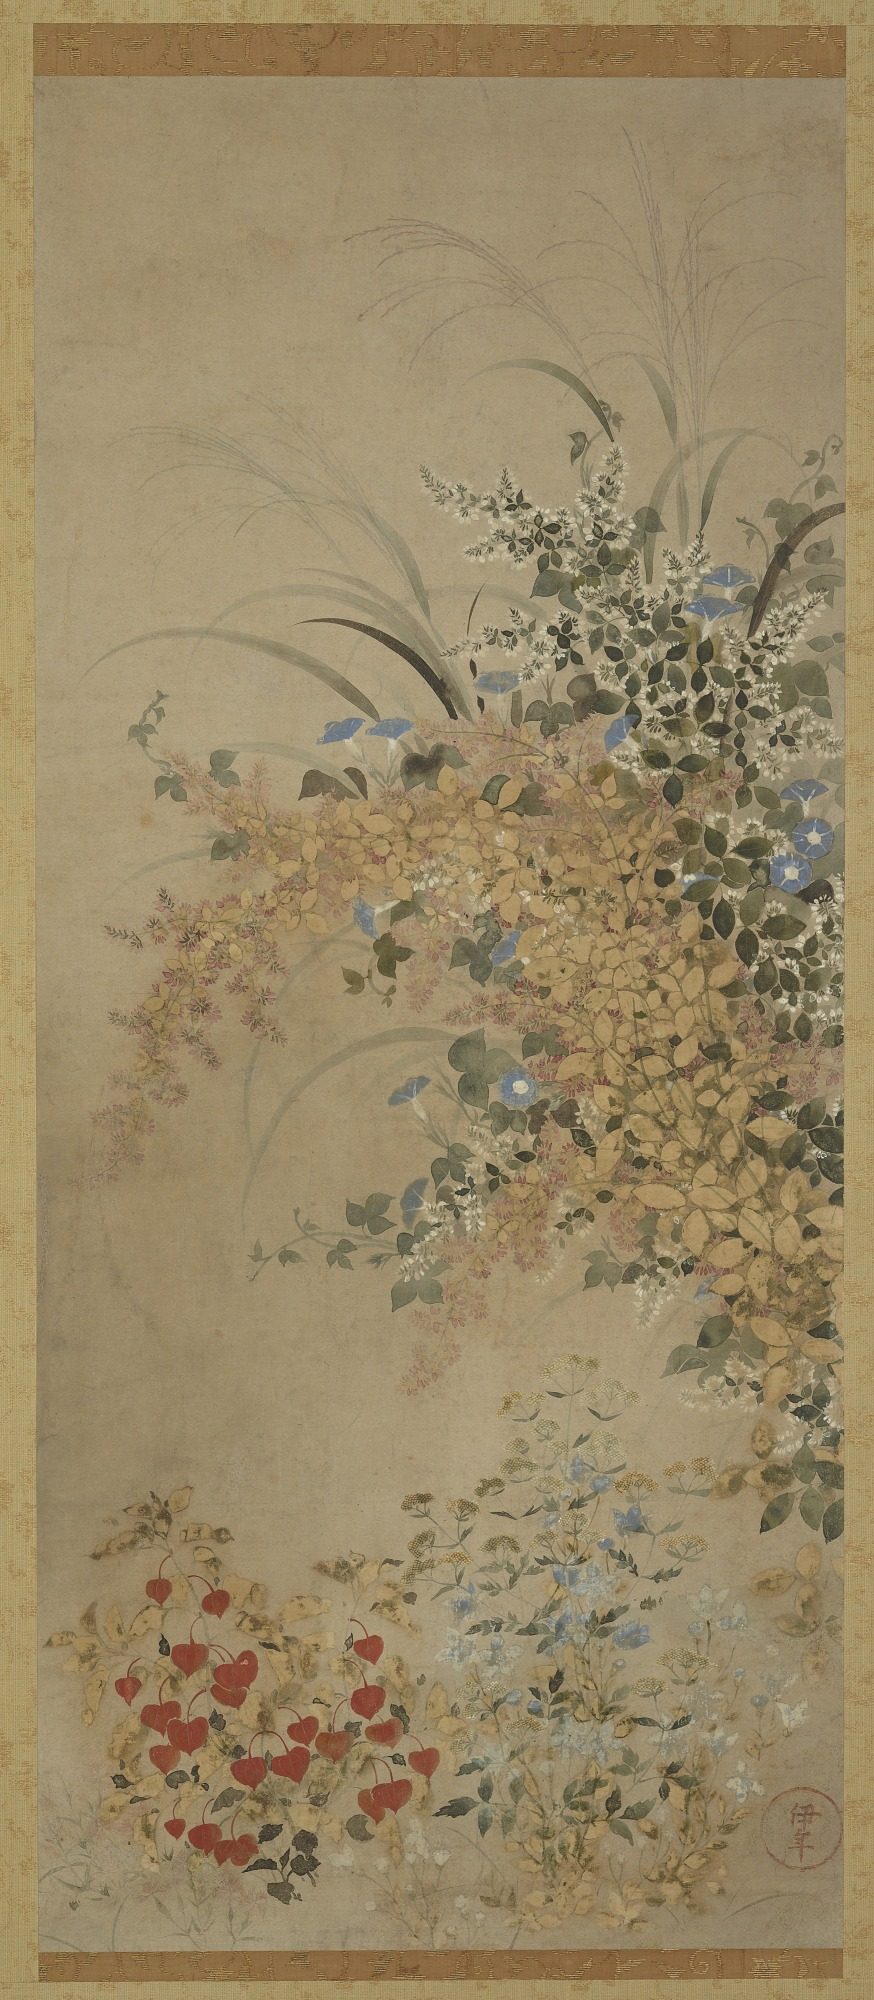 : Flowers and grasses